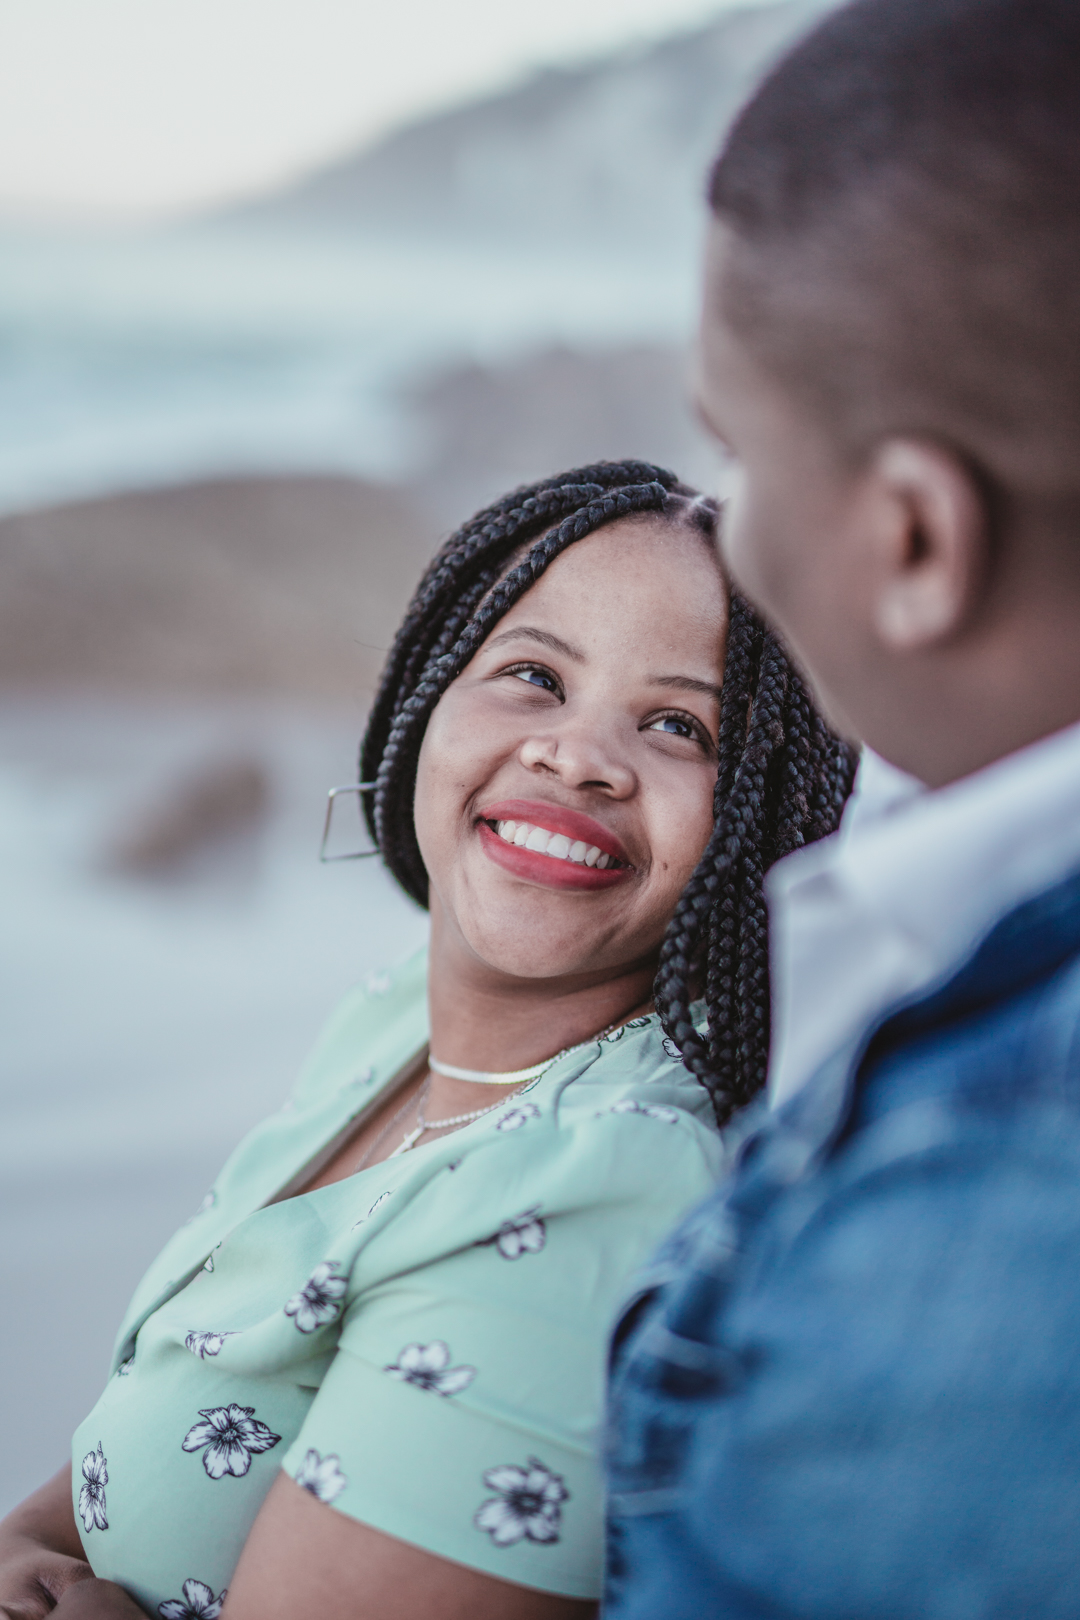 Couples Photos - Cape Town Beach session by Cape Image Co. _Small-file-28.jpg